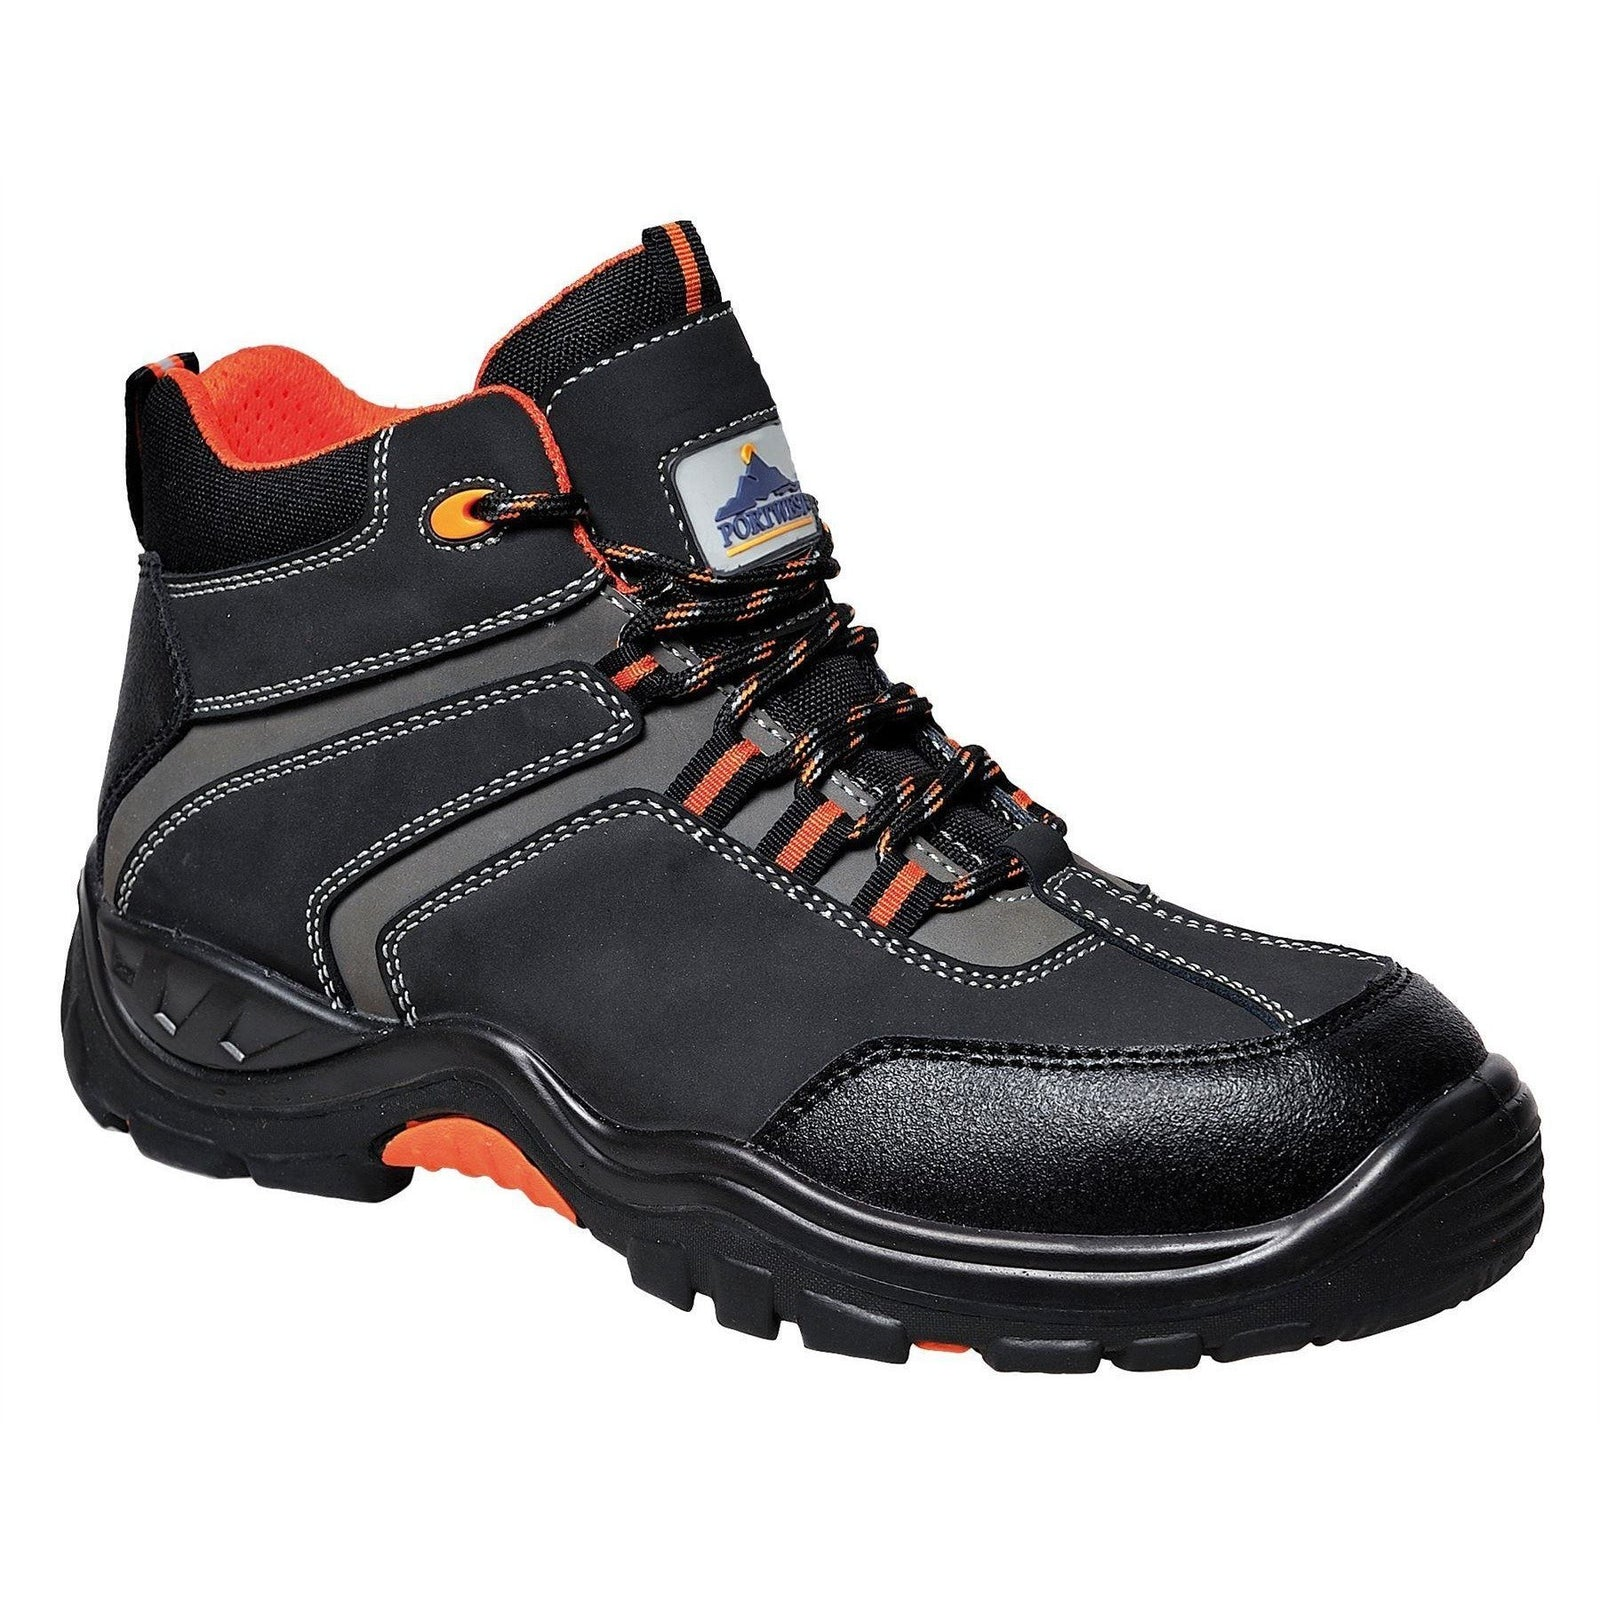 Portwest Compositelite Operis Boot S3 HRO FC60 - reid outdoors